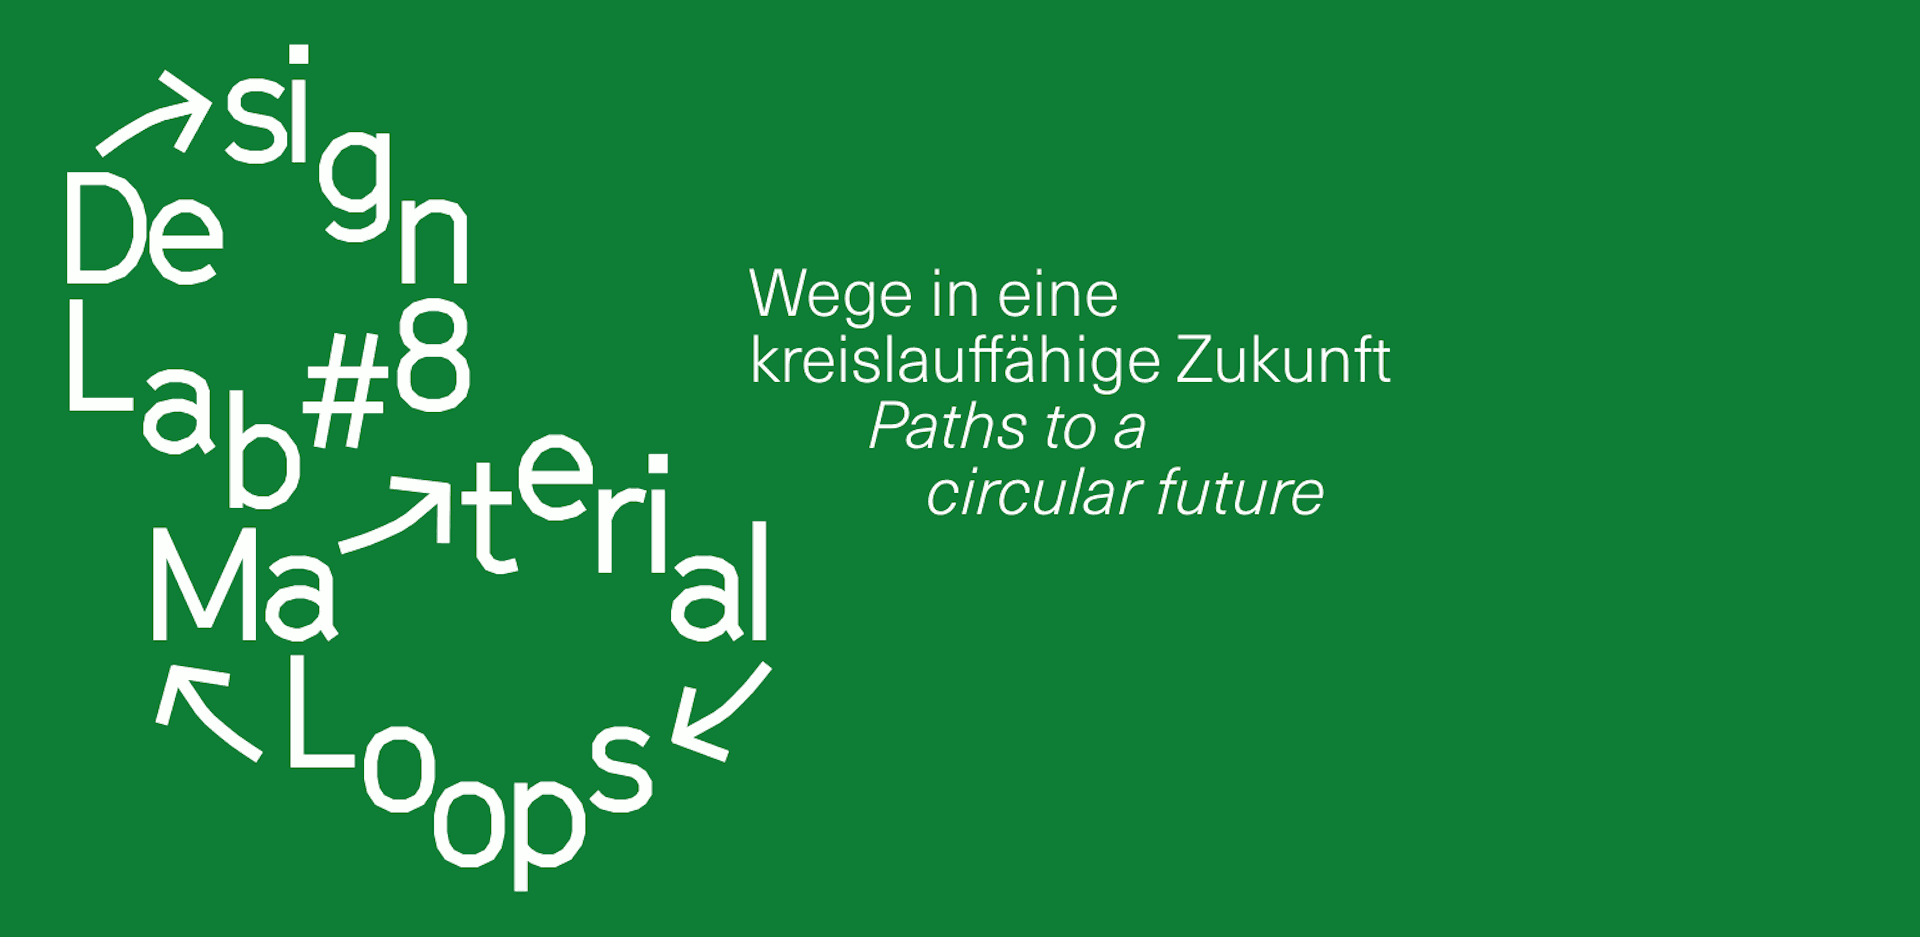 Looking at The Circular Economy at the Kunstgewerbemuseum: Design Lab #8 – Digital Opening and Reader Launch on 10 June 2021